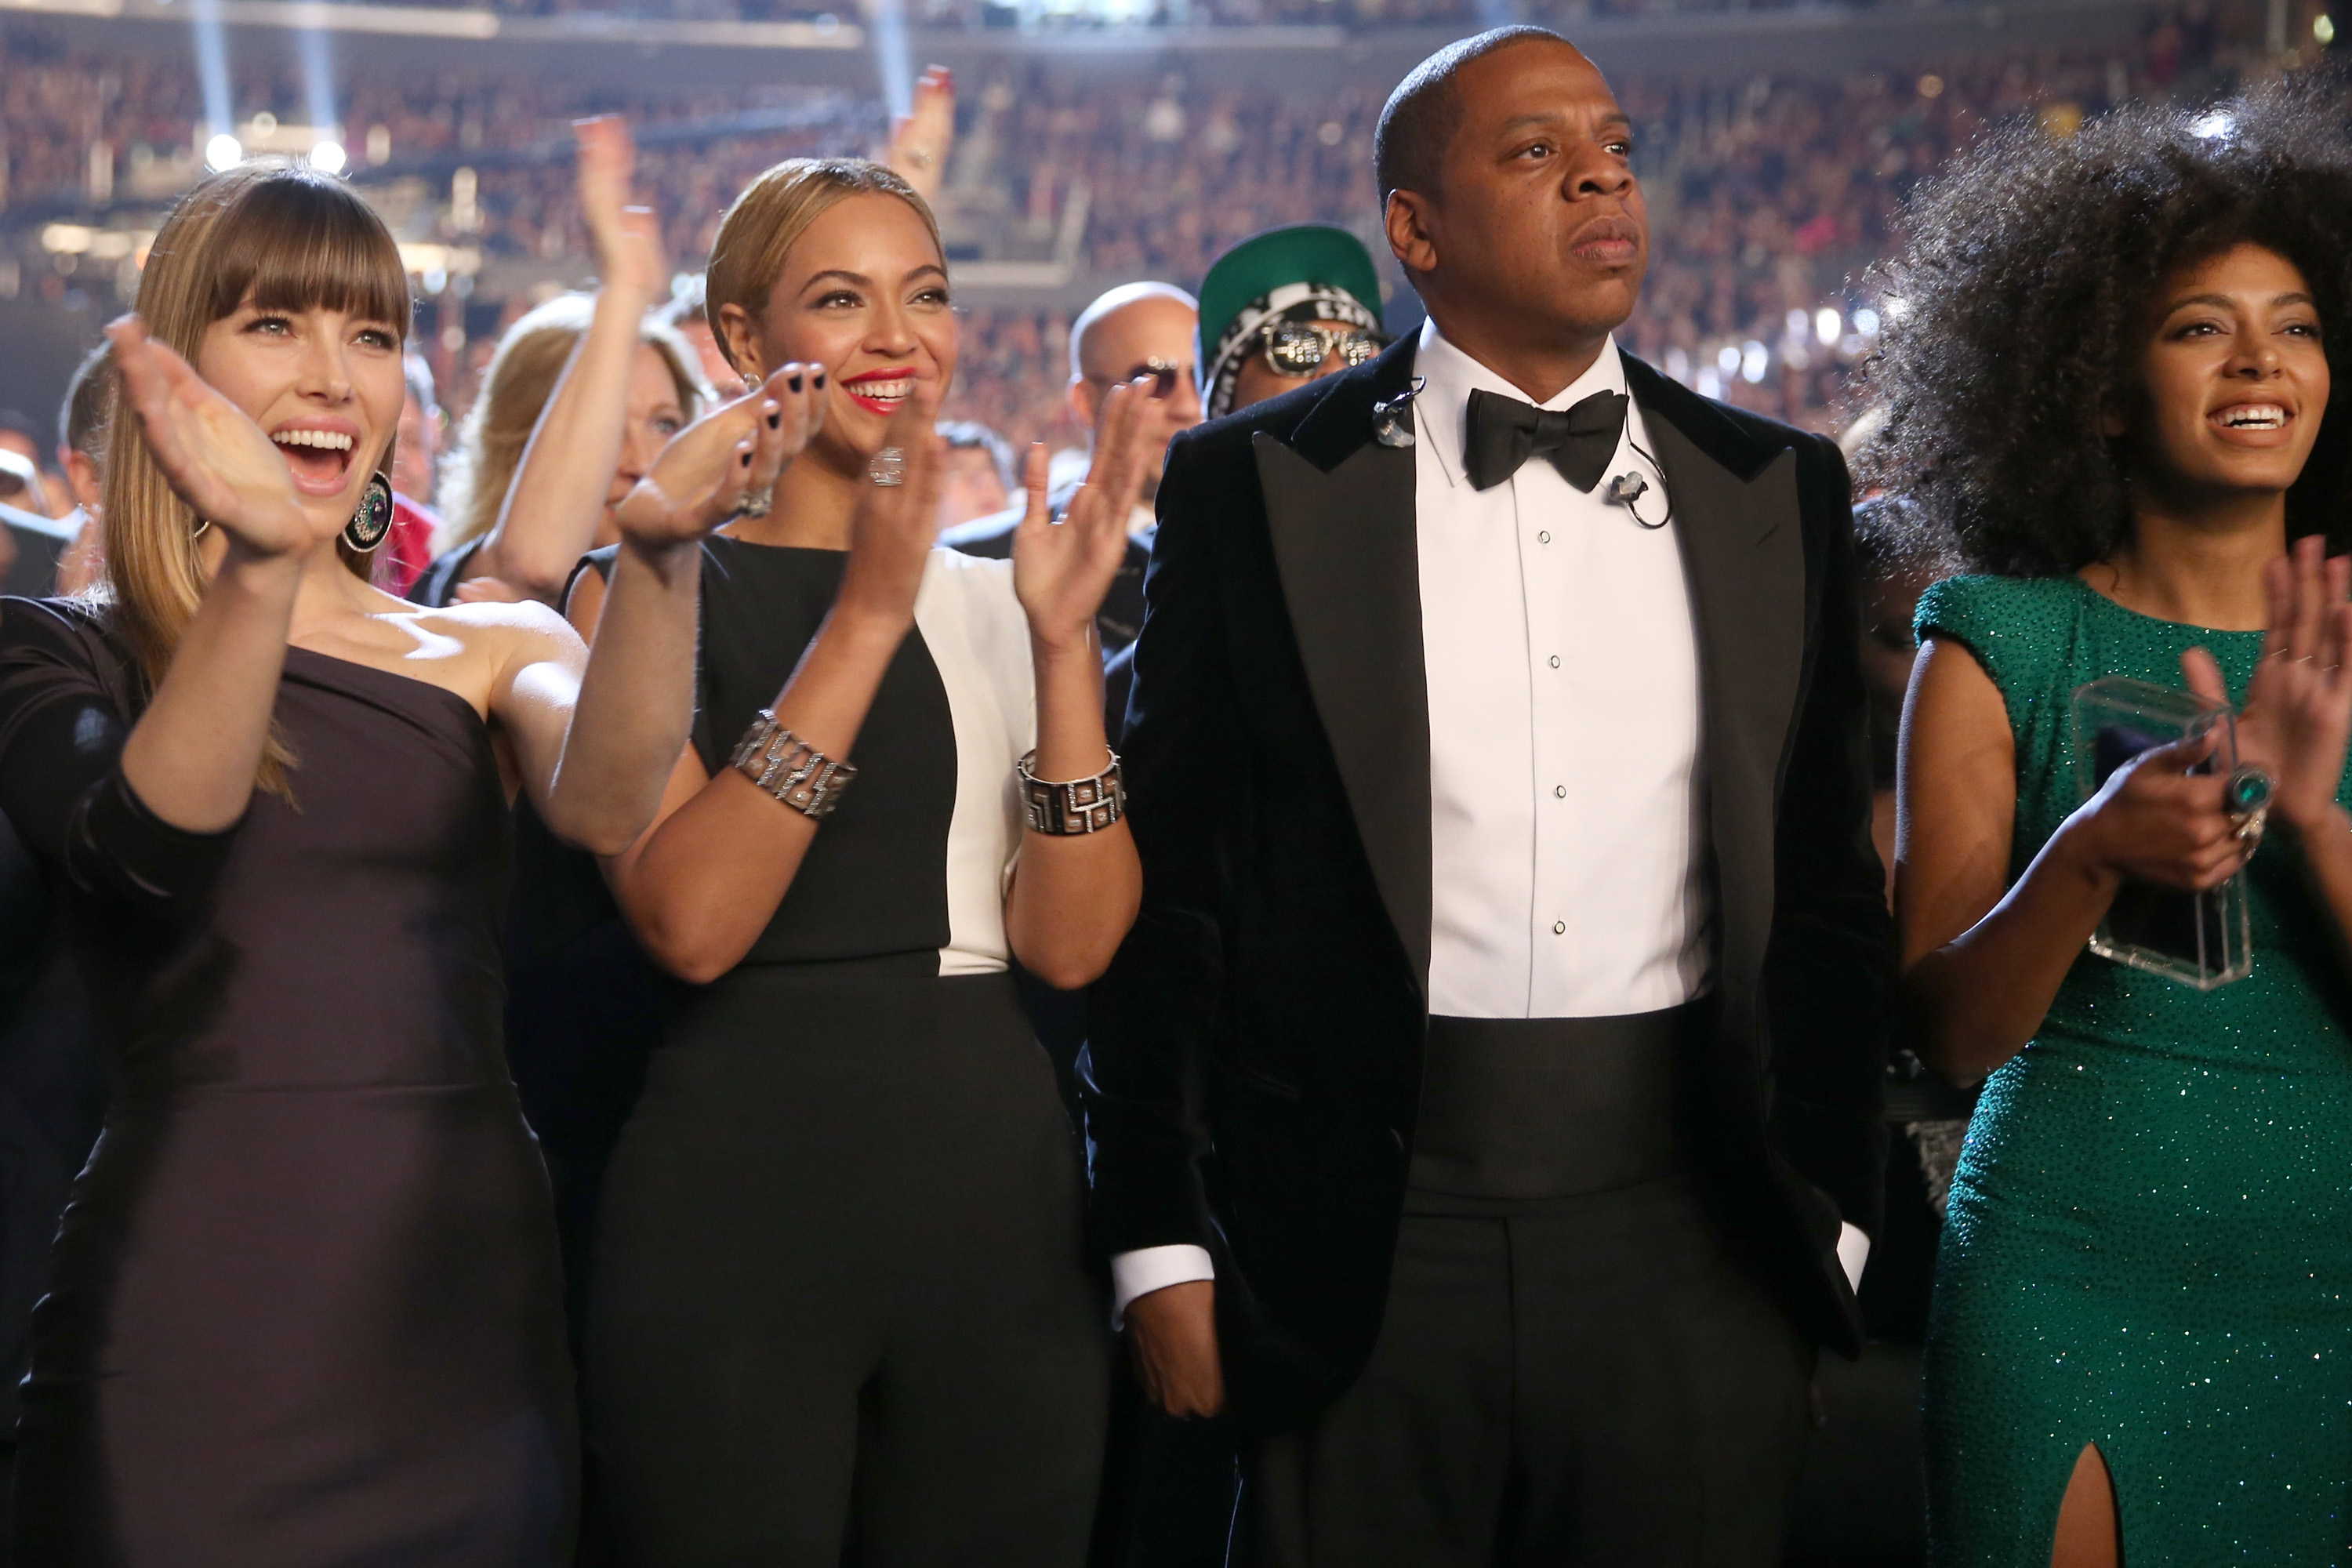 LOS ANGELES, CA - FEBRUARY 10:  (L-R) Actress Jessica Biel, singer Beyonce, rapper Jay-Z and singer Solange Knowles attend th